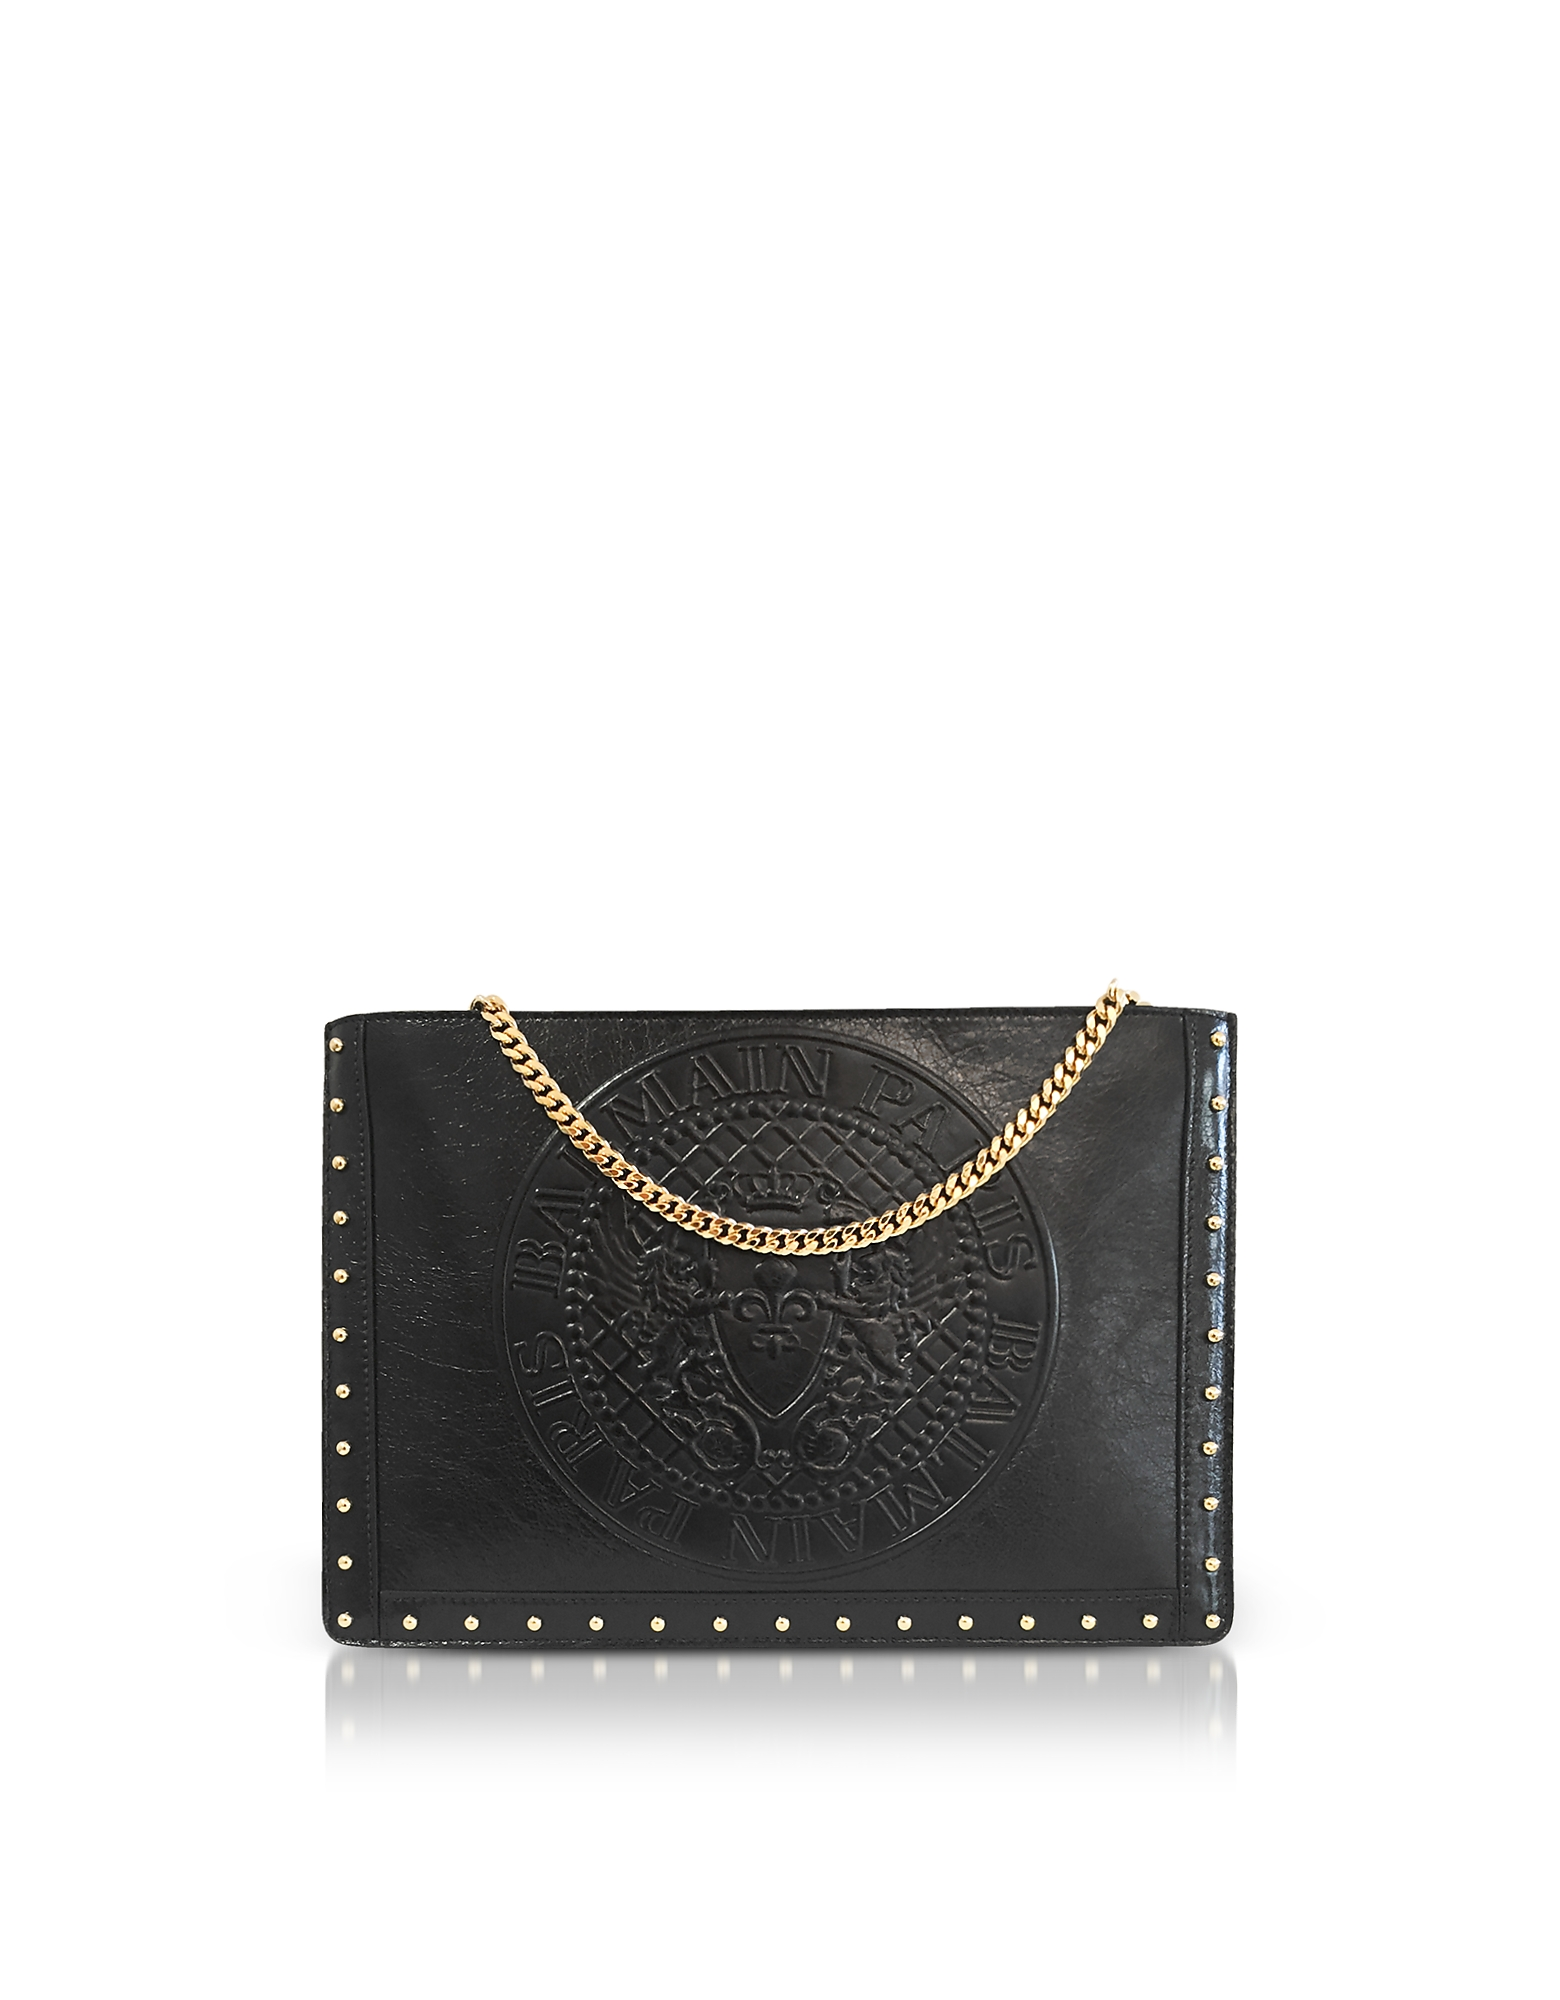 Balmain Handbags, Black Coin Embossed Leather Mini Domaine Pouch w/Chain